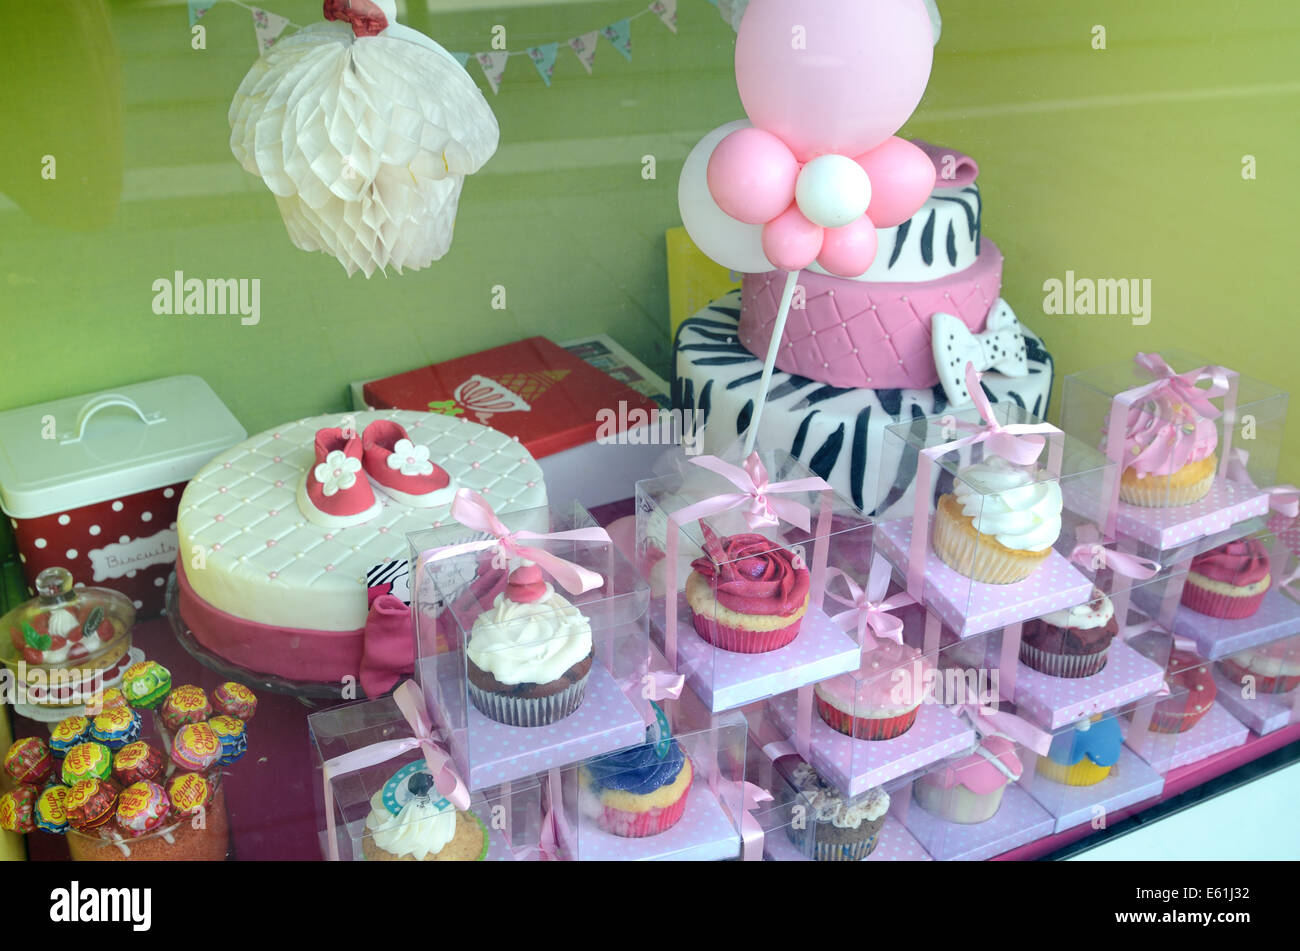 Cup Cakes and Icing Cakes in Window of Cake Shop or Patisserie Nice Alpes-Maritimes France - Stock Image